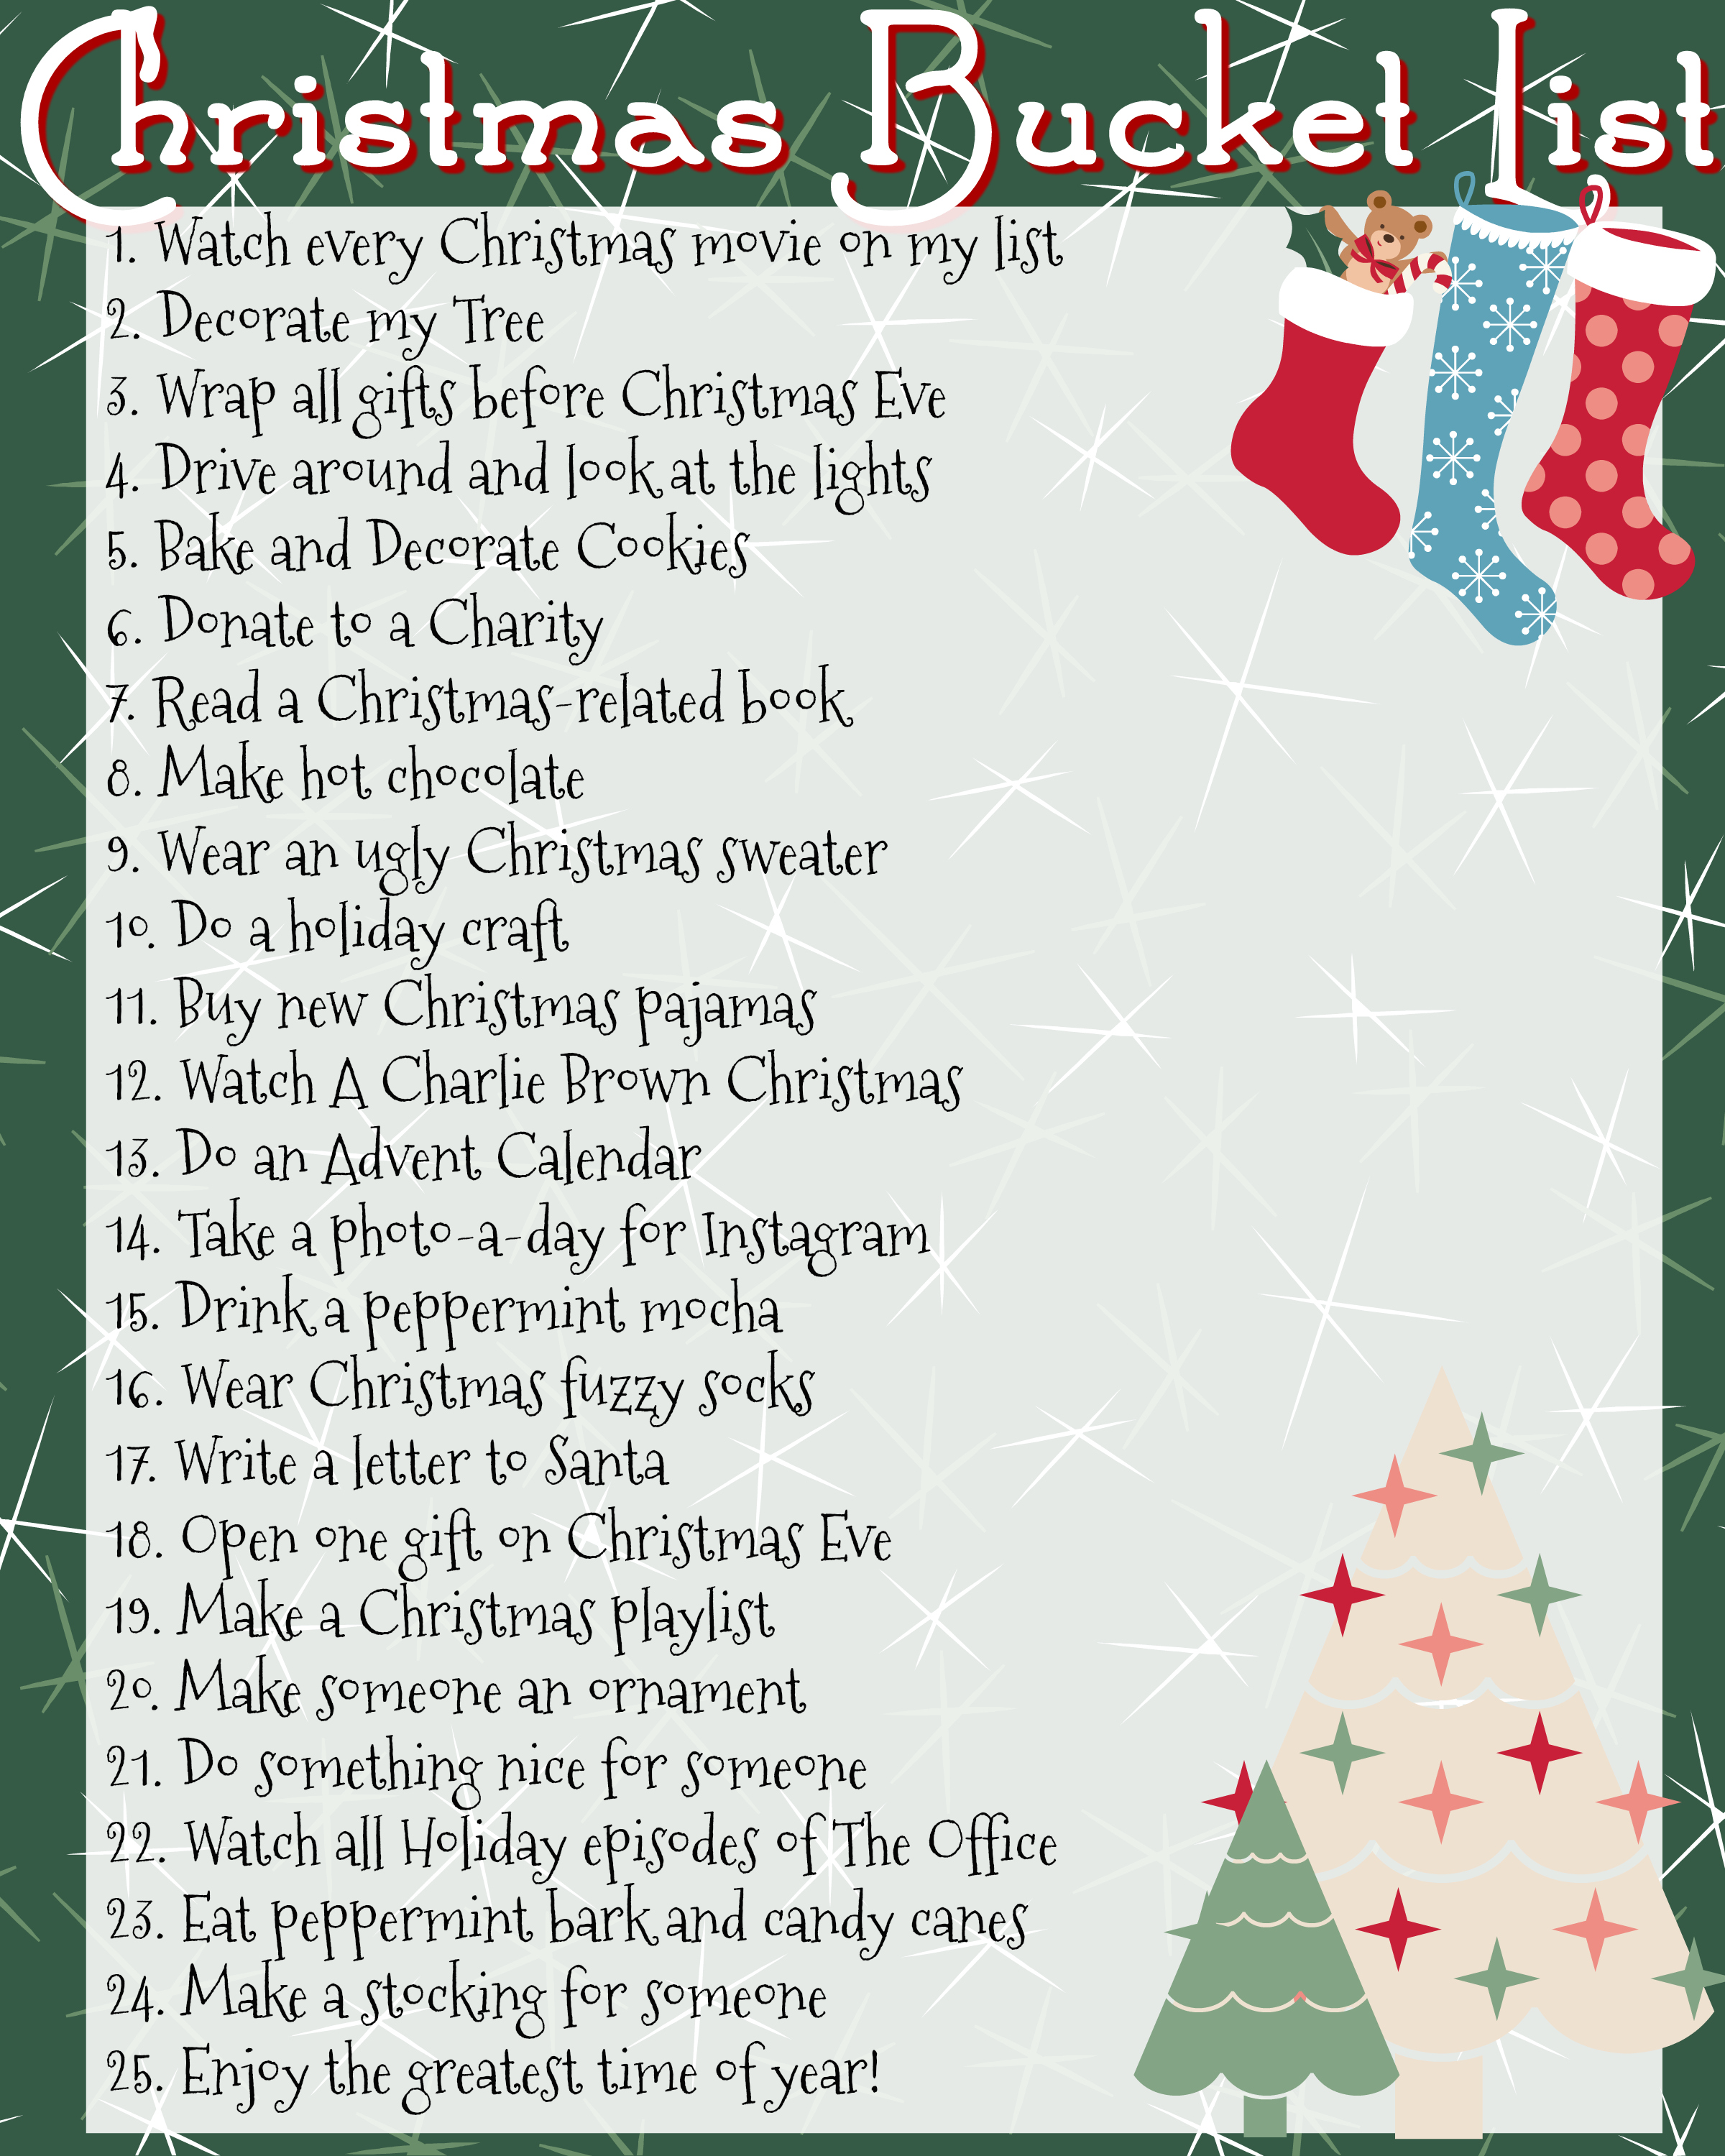 Christmas bucket list.jpg